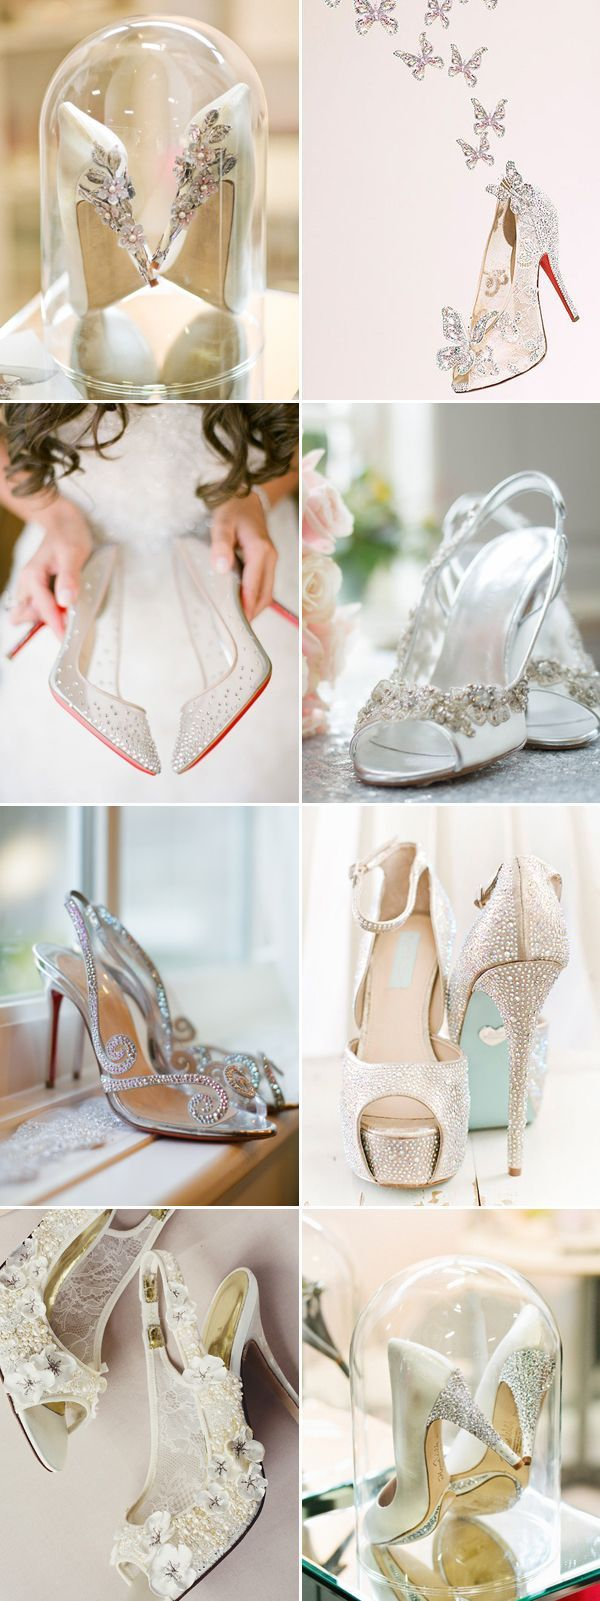 15 Stunning Cinderella-Inspired Wedding Shoes - Romantic Cinderella-like bridal shoes!